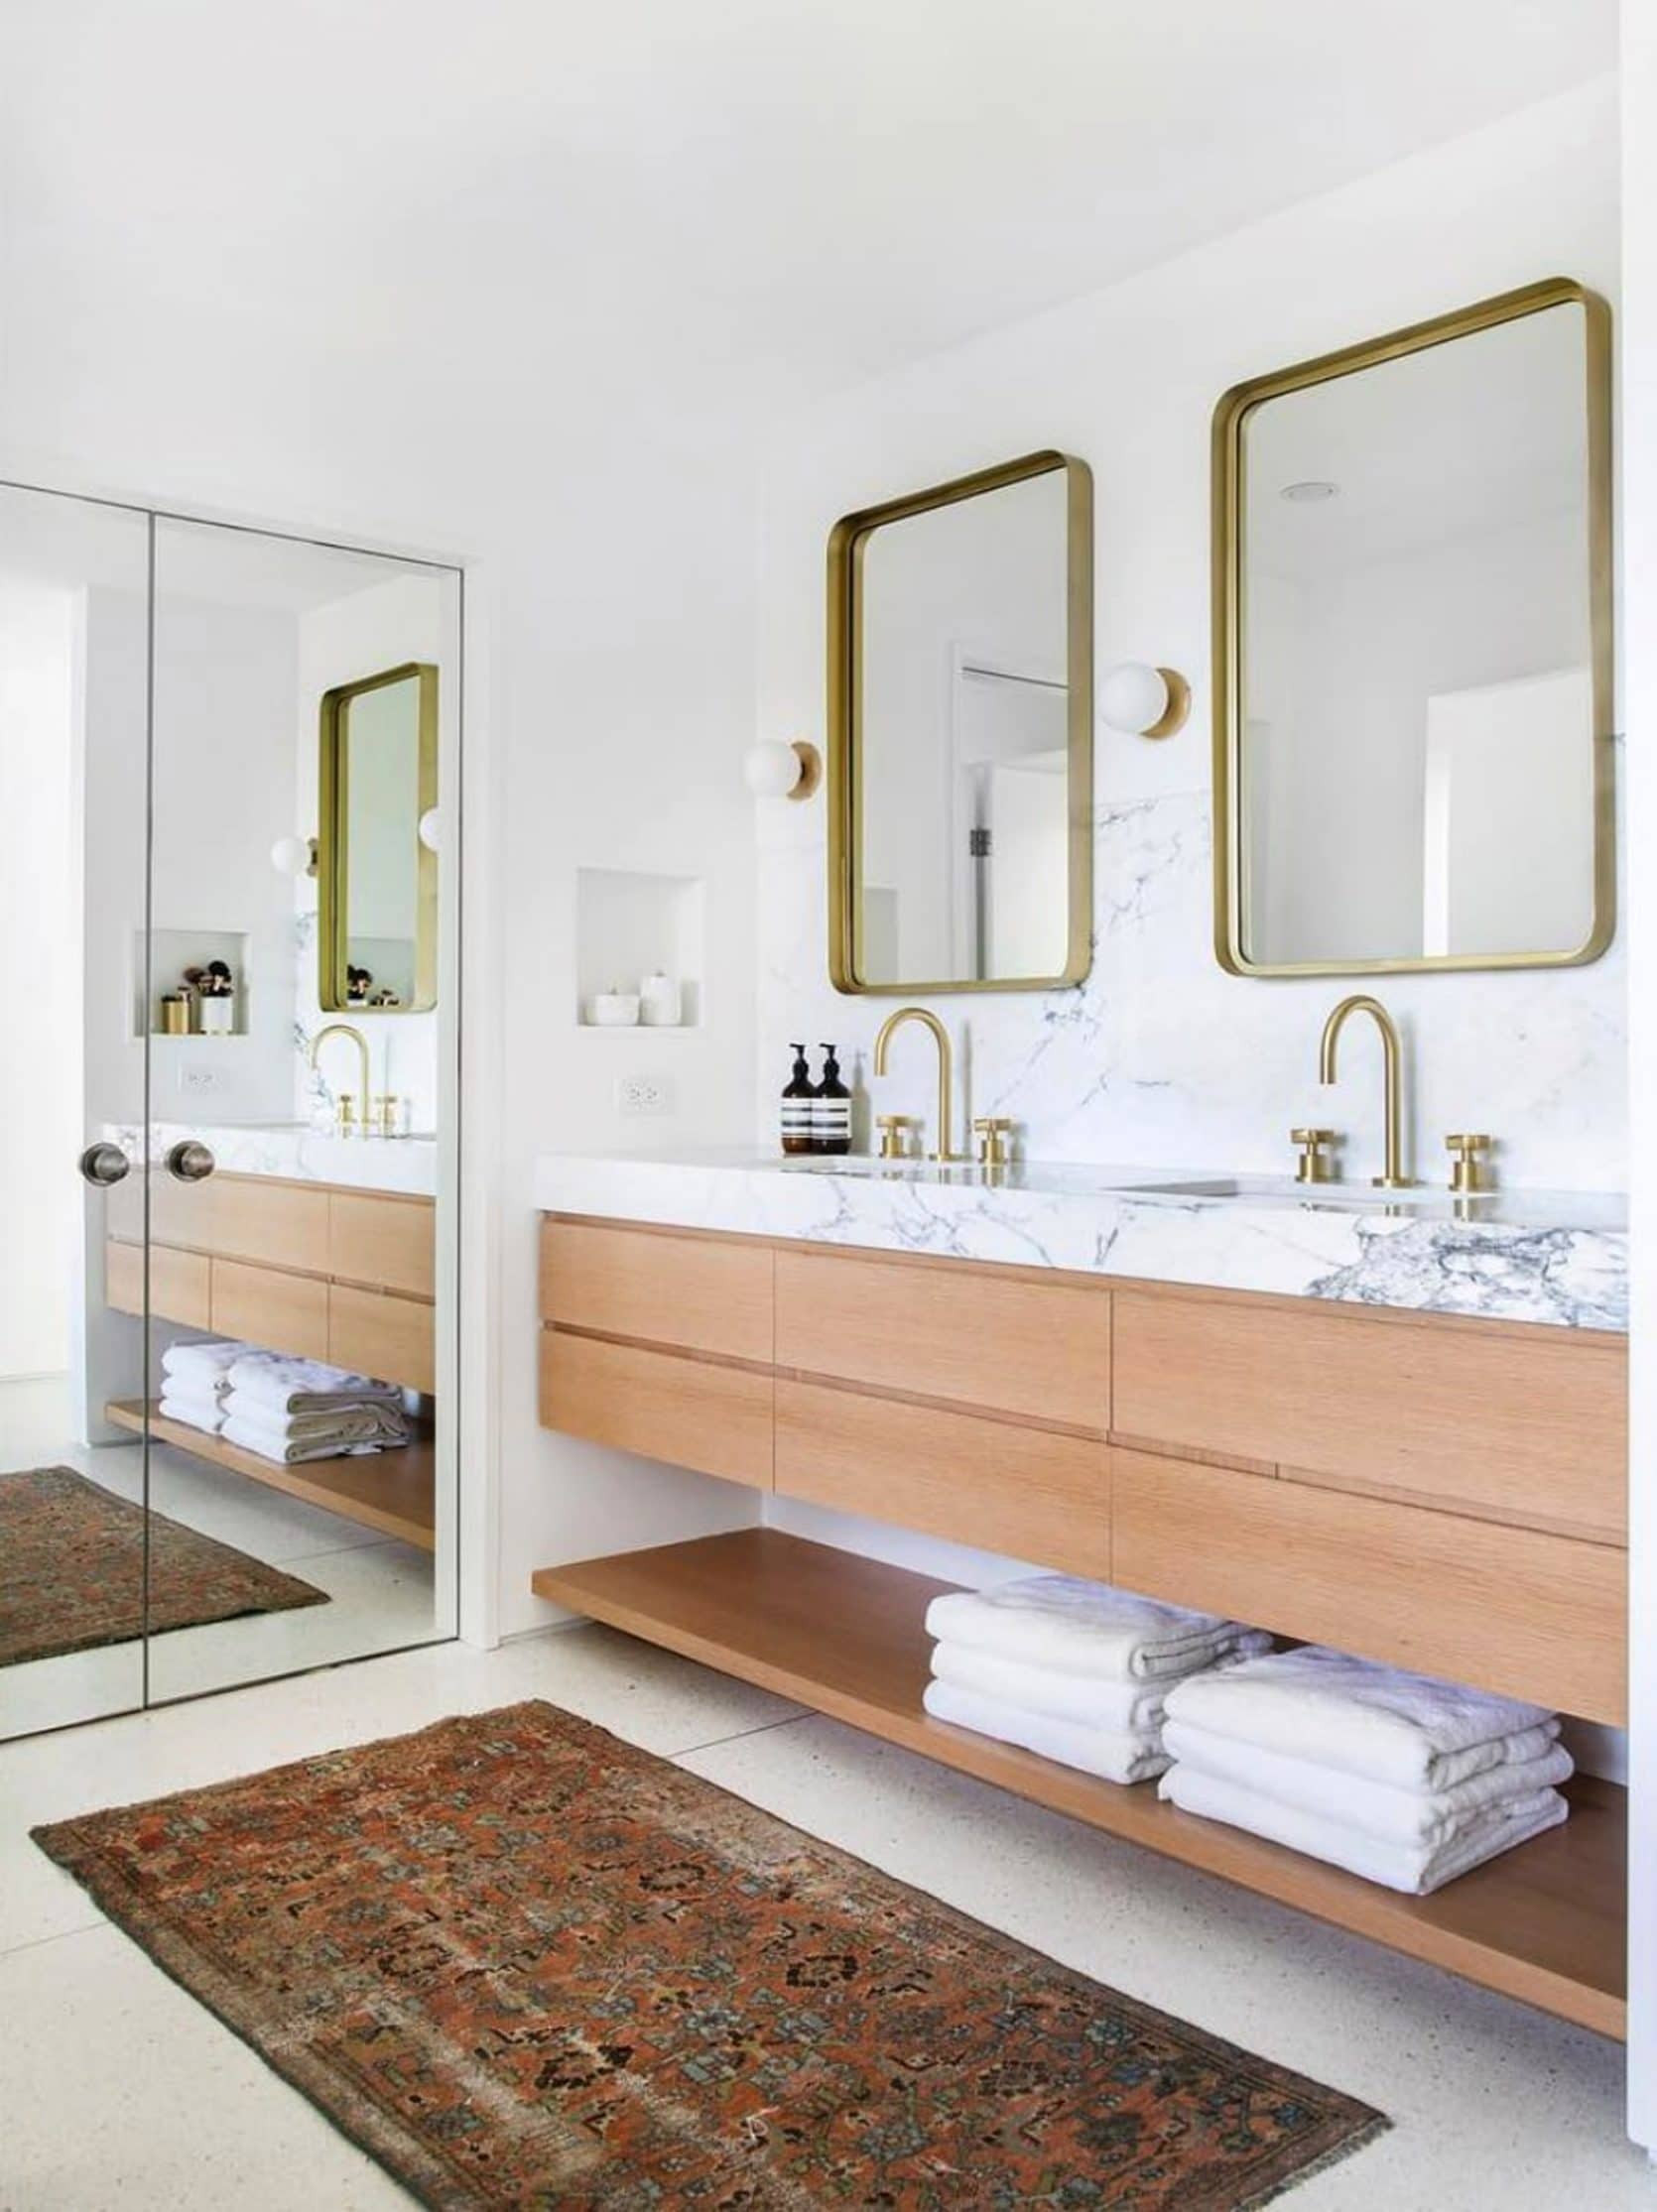 Bathroom Remodel Ideas 2020  10 of the Most Exciting Bathroom Design Trends for 2019